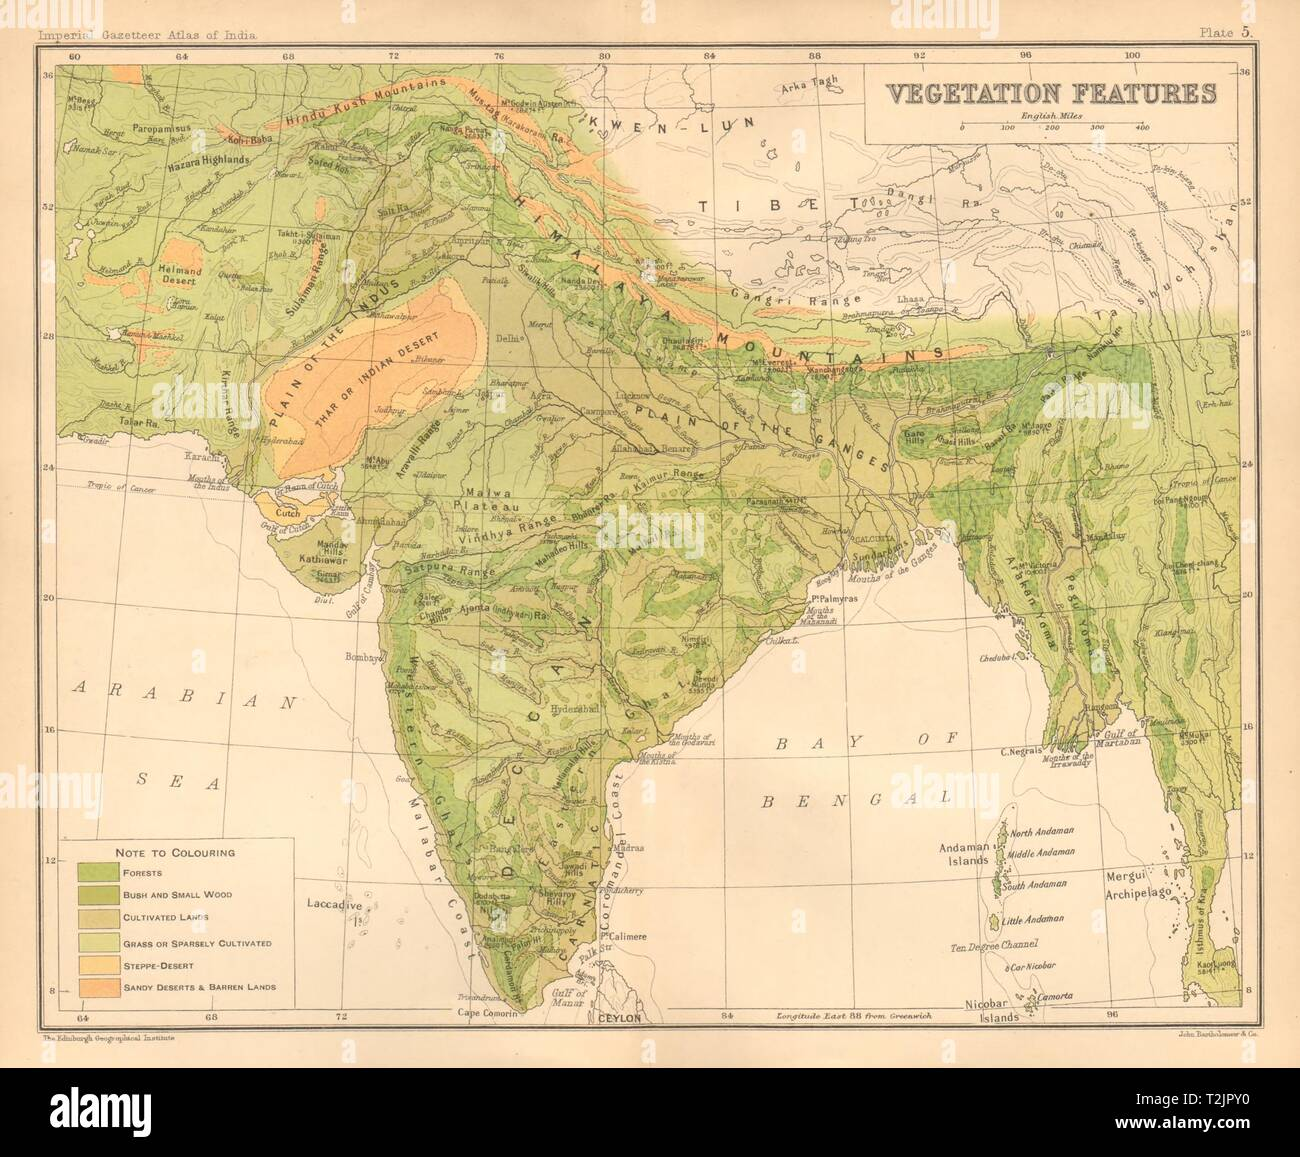 SOUTH ASIA. BRITISH INDIA Vegetation forest bush desert ... on map of india states, map of malaysia and singapore, map of iran and neighboring countries, map of ancient india, map of india and tibet, map of china and bordering countries, map of india with cities, map of india and sri lanka, world map with countries, map of nepal and tibet, map of japan and neighboring countries, map of asia, map of the country of india, map of india and mountains, map of africa, map of india now, map of india and singapore, map of countries surrounding china, map of austria with surrounding countries, map of india and saudi arabia,